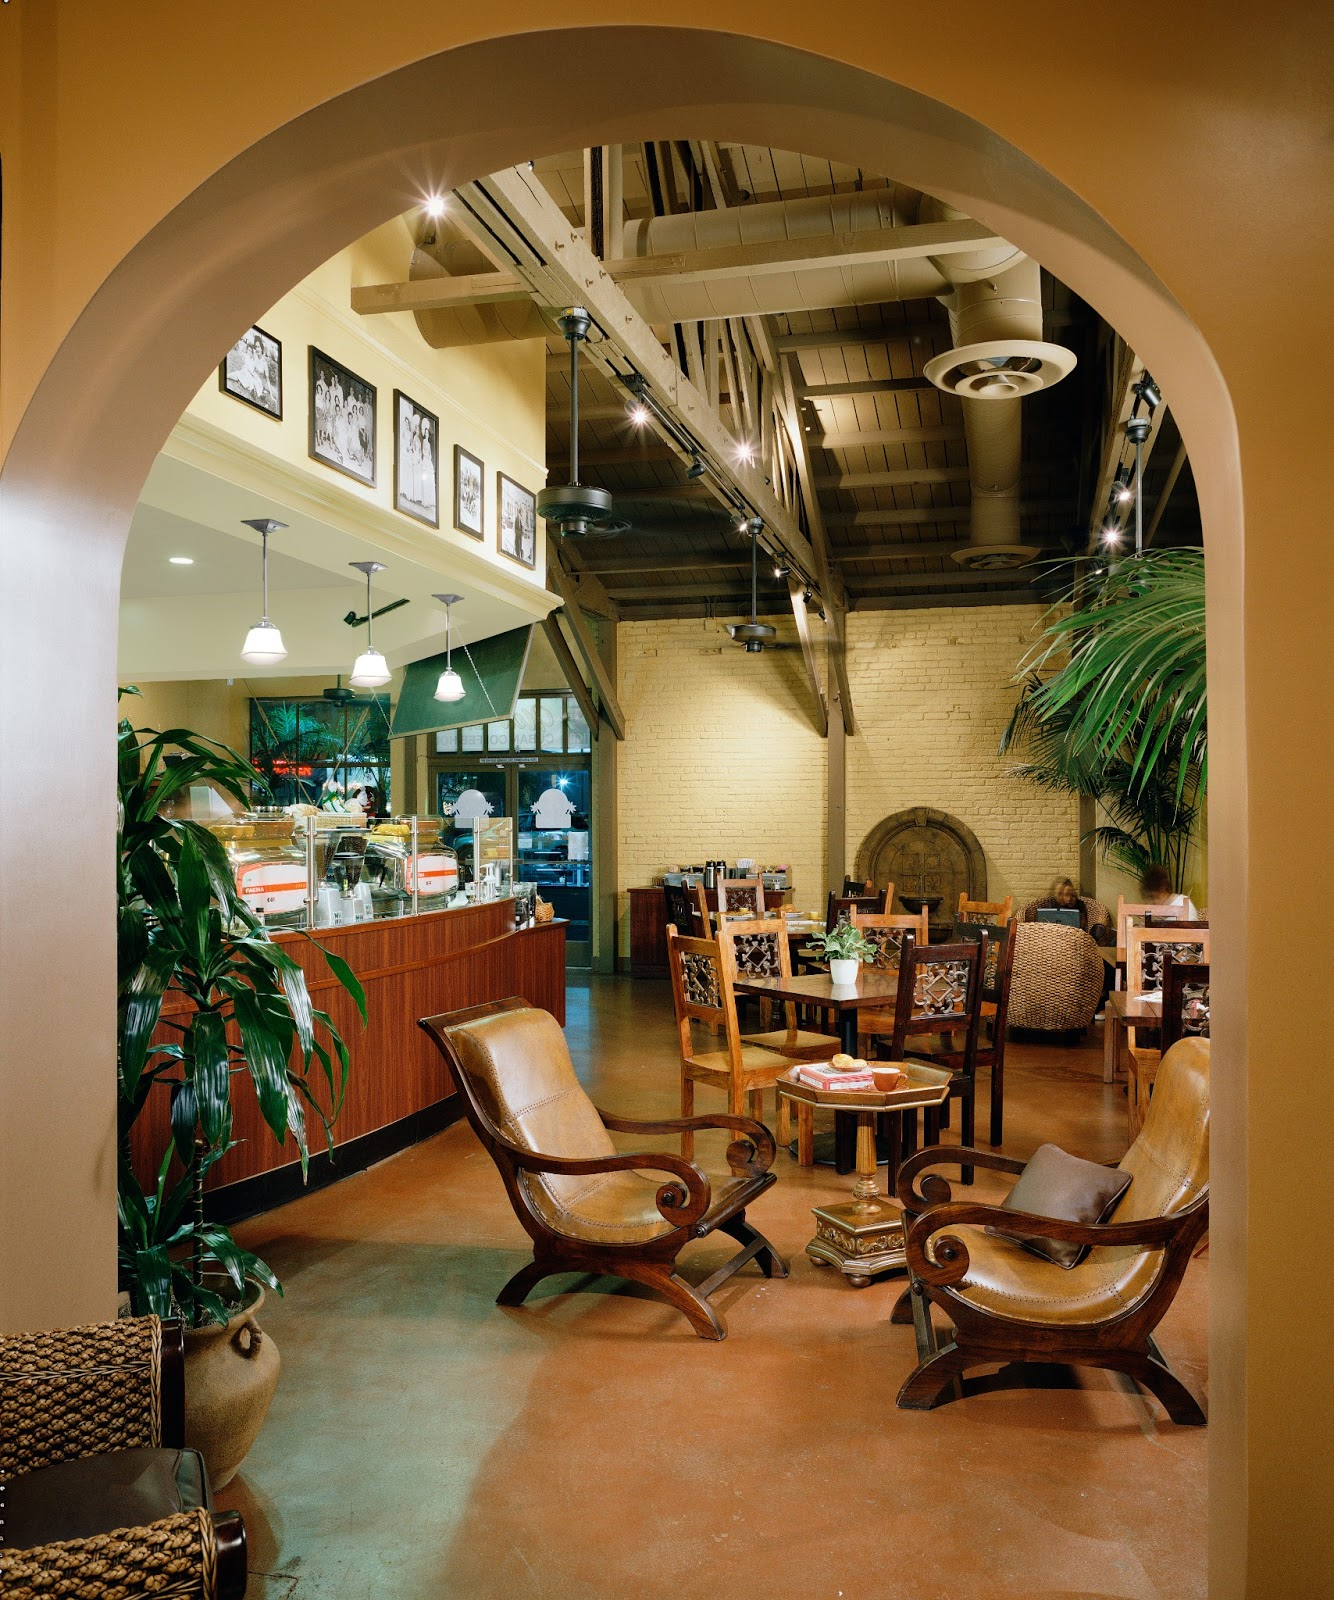 The lounge area in the rear allows patrons to relax and enjoy the infectious Cuban atmosphere while playing dominoes or listening to live music.